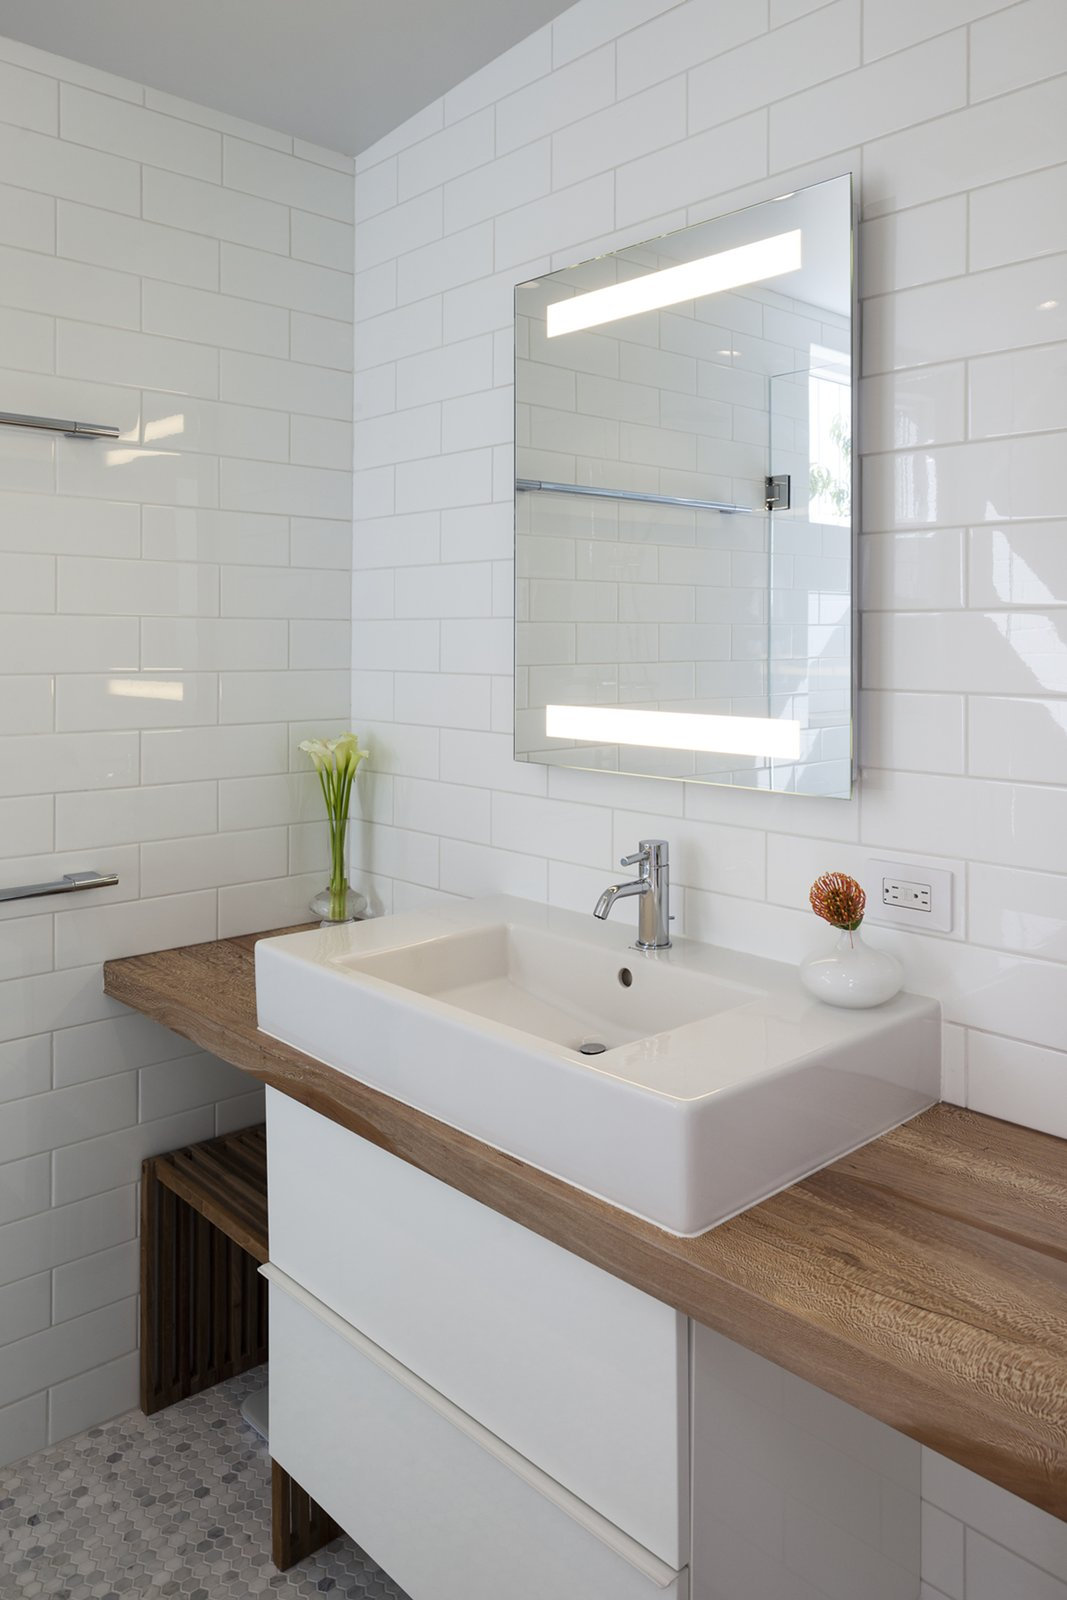 Bath Room, Wood Counter, Accent Lighting, Vessel Sink, Ceramic Tile Floor, Subway Tile Wall, and Ceramic Tile Wall  Shotwell Residence by Todd Davis Architecture